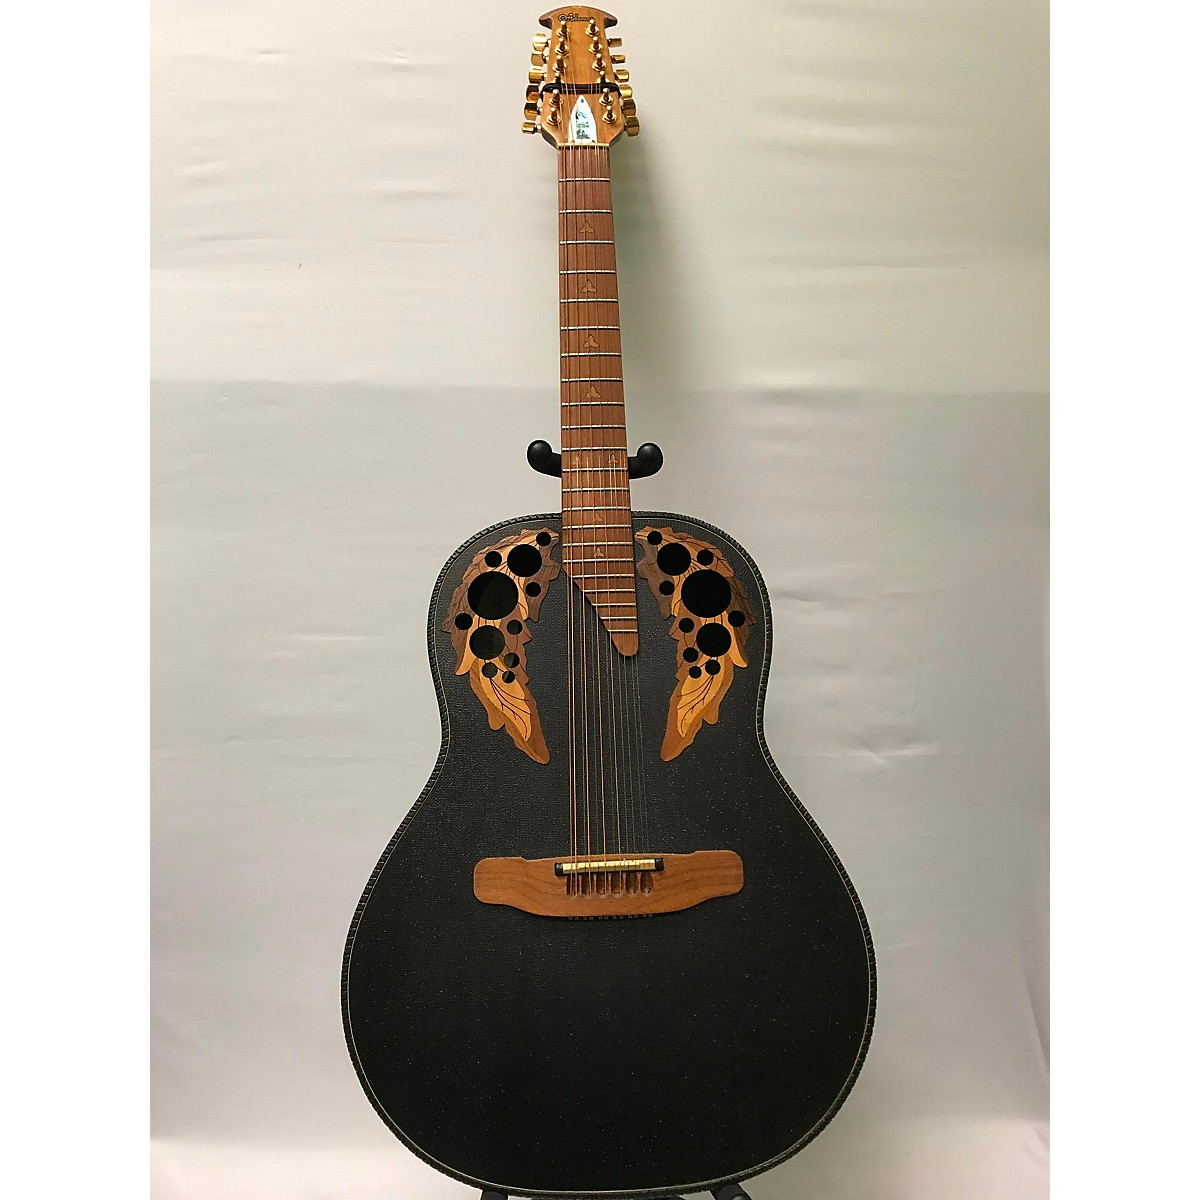 Adamas 1685-5 12 String Acoustic Electric Guitar